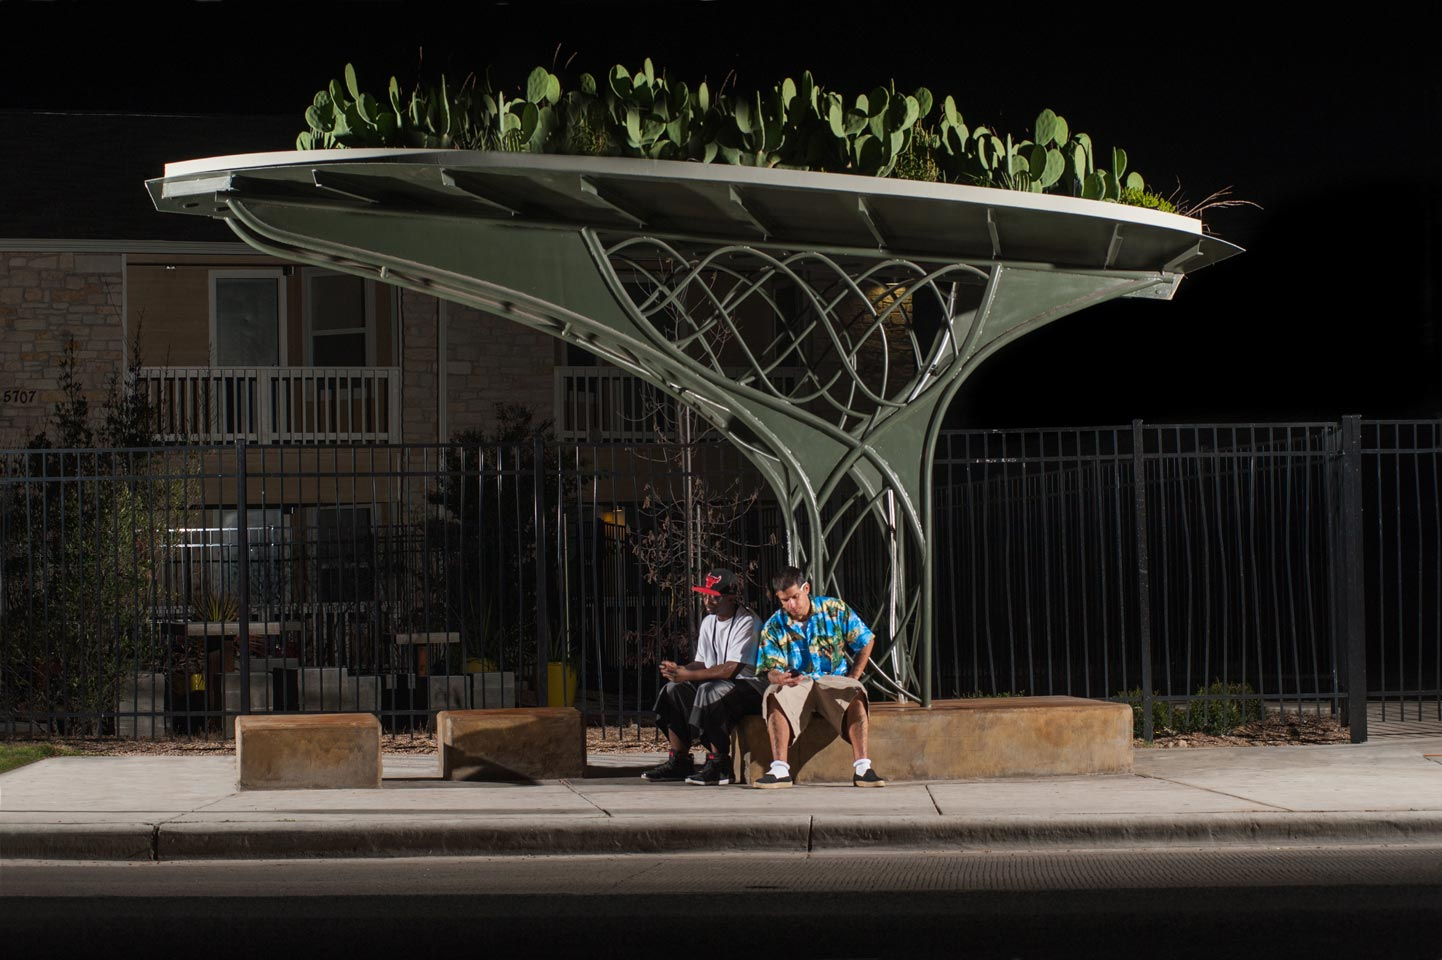 Green Roof Bus Shelter Project